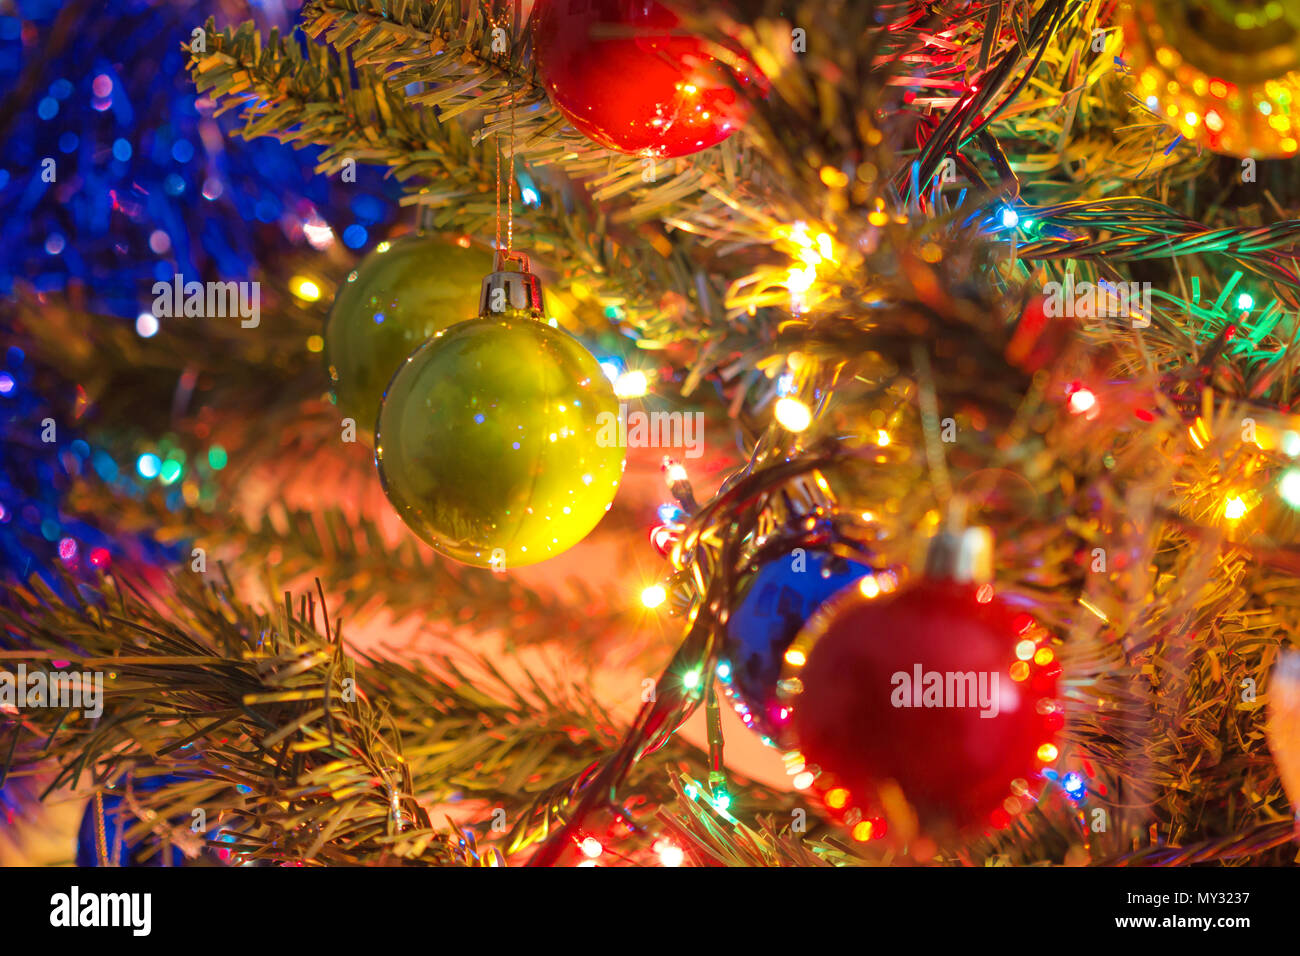 Decorated Christmas tree on blurred,  Beautiful Christmas ball hanging decorated christmas tree background. Stock Photo